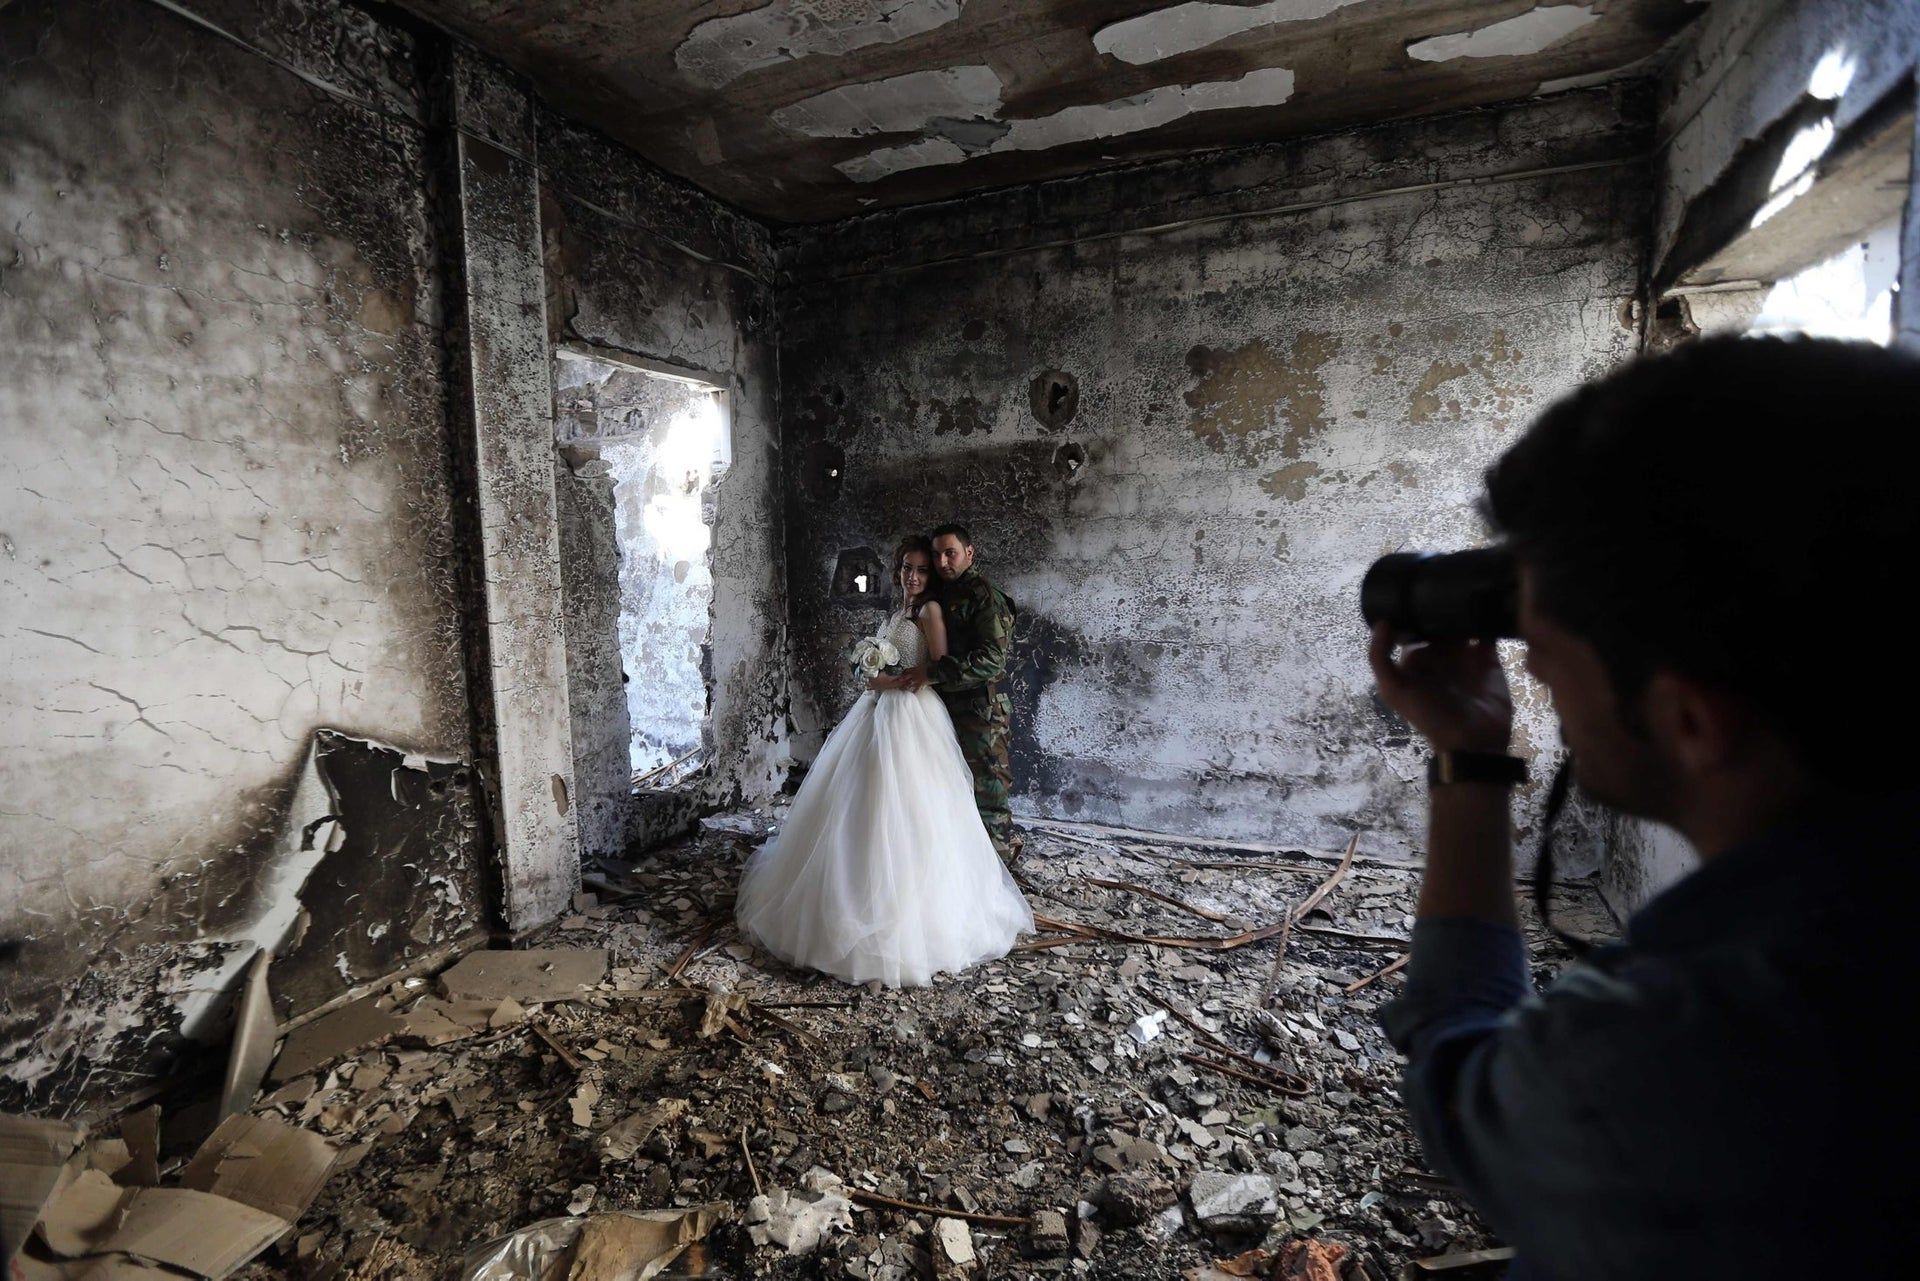 Newly-wed Syrian couple Nada Merhi,18, and Hassan Youssef,27, have their wedding pictures taken in a heavily damaged building in the war ravaged city of Homs on February 5, 2016.